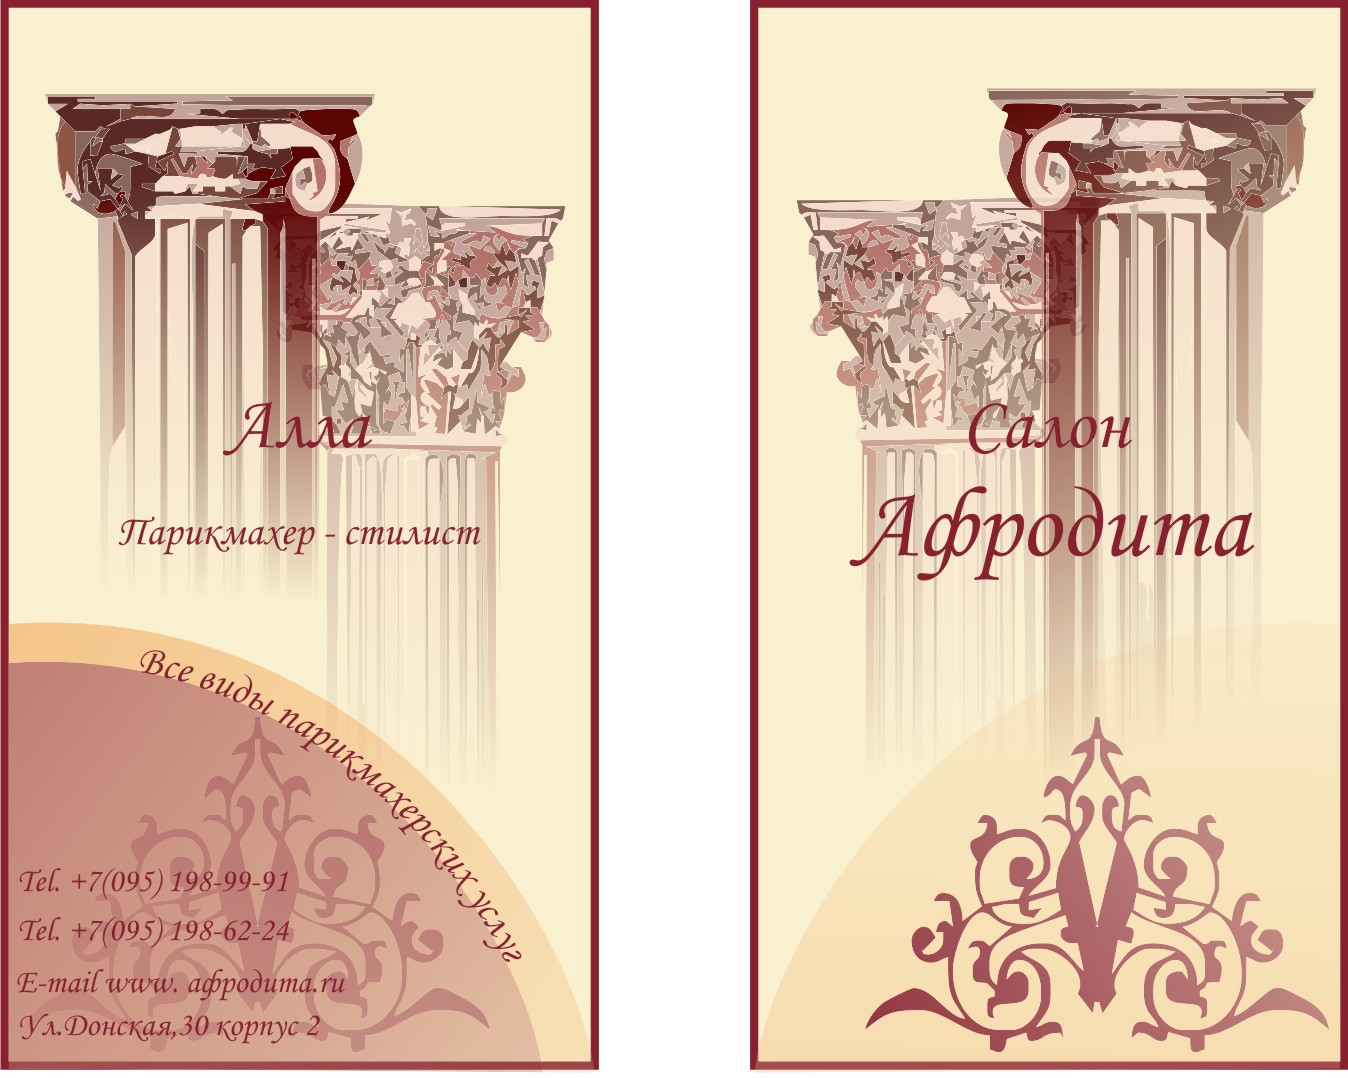 Greek business cards